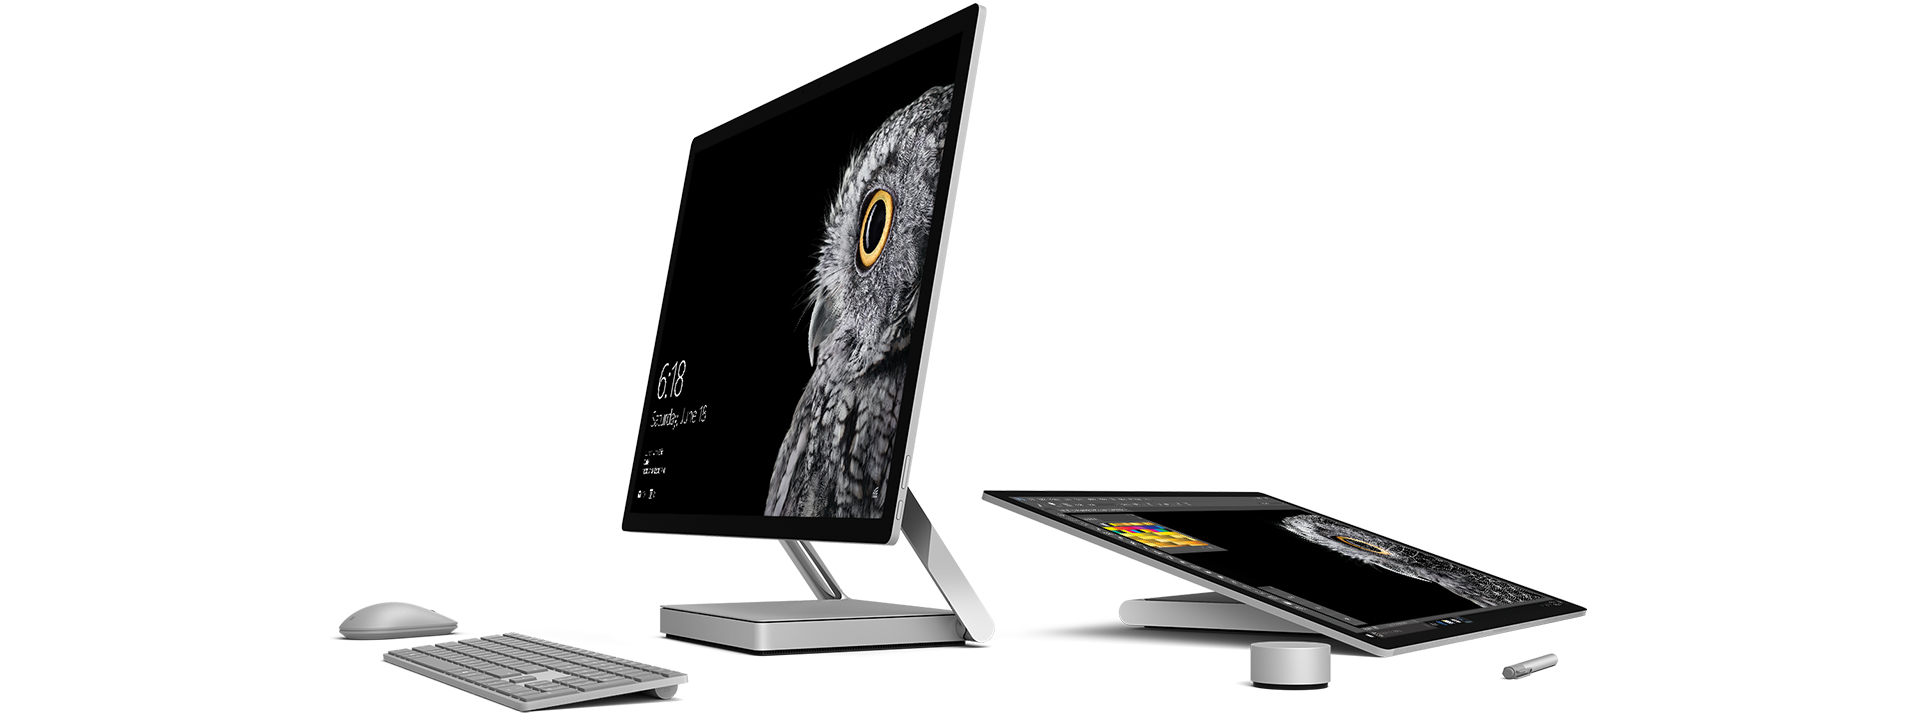 Surface Studio shown in Studio mode and desktop mode